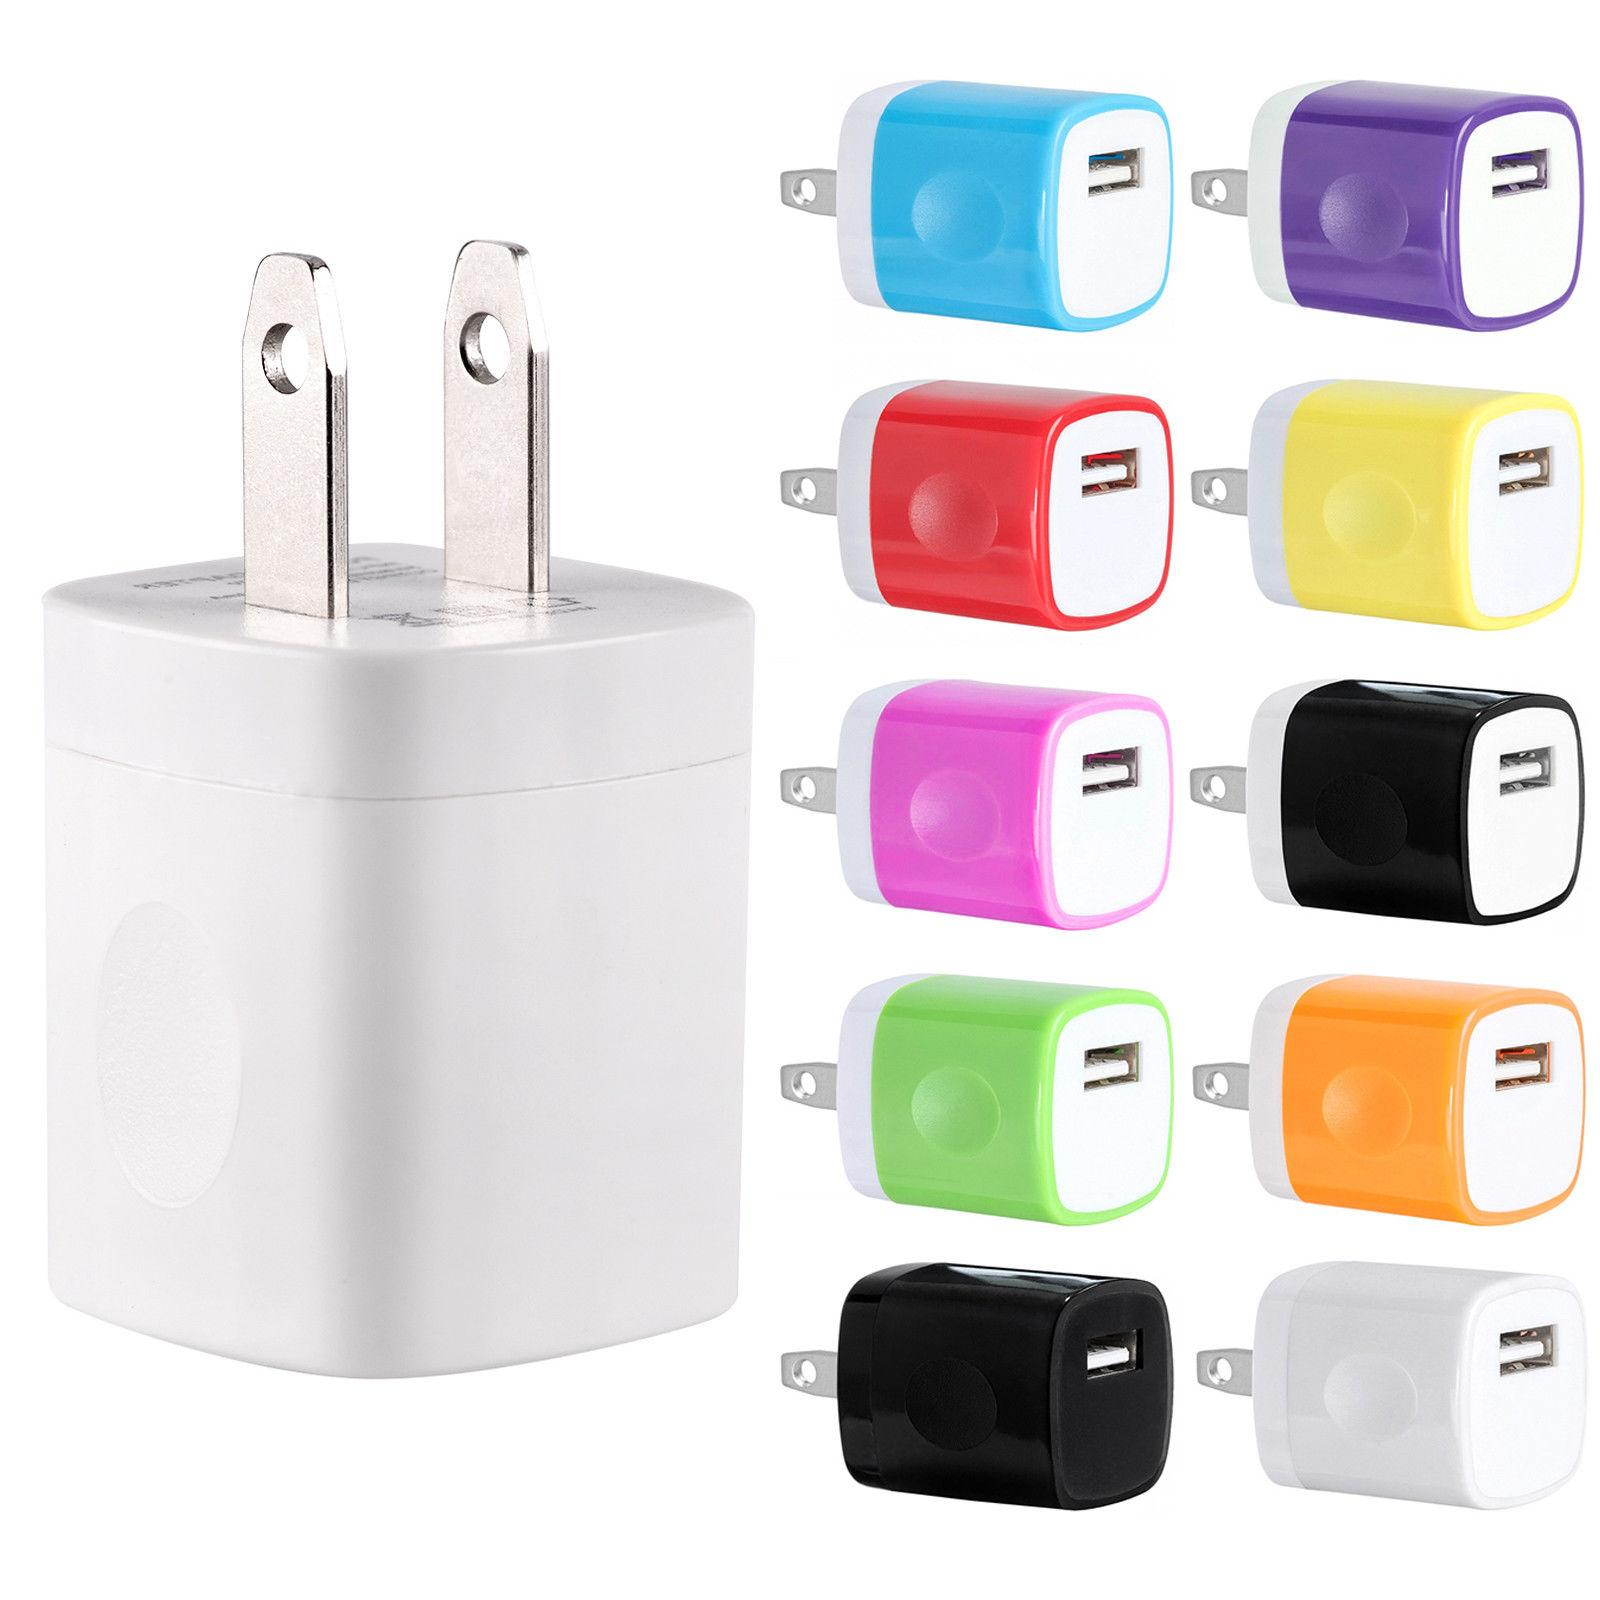 USB Wall Charger Power Adapter Plug AC Universal For iPhone